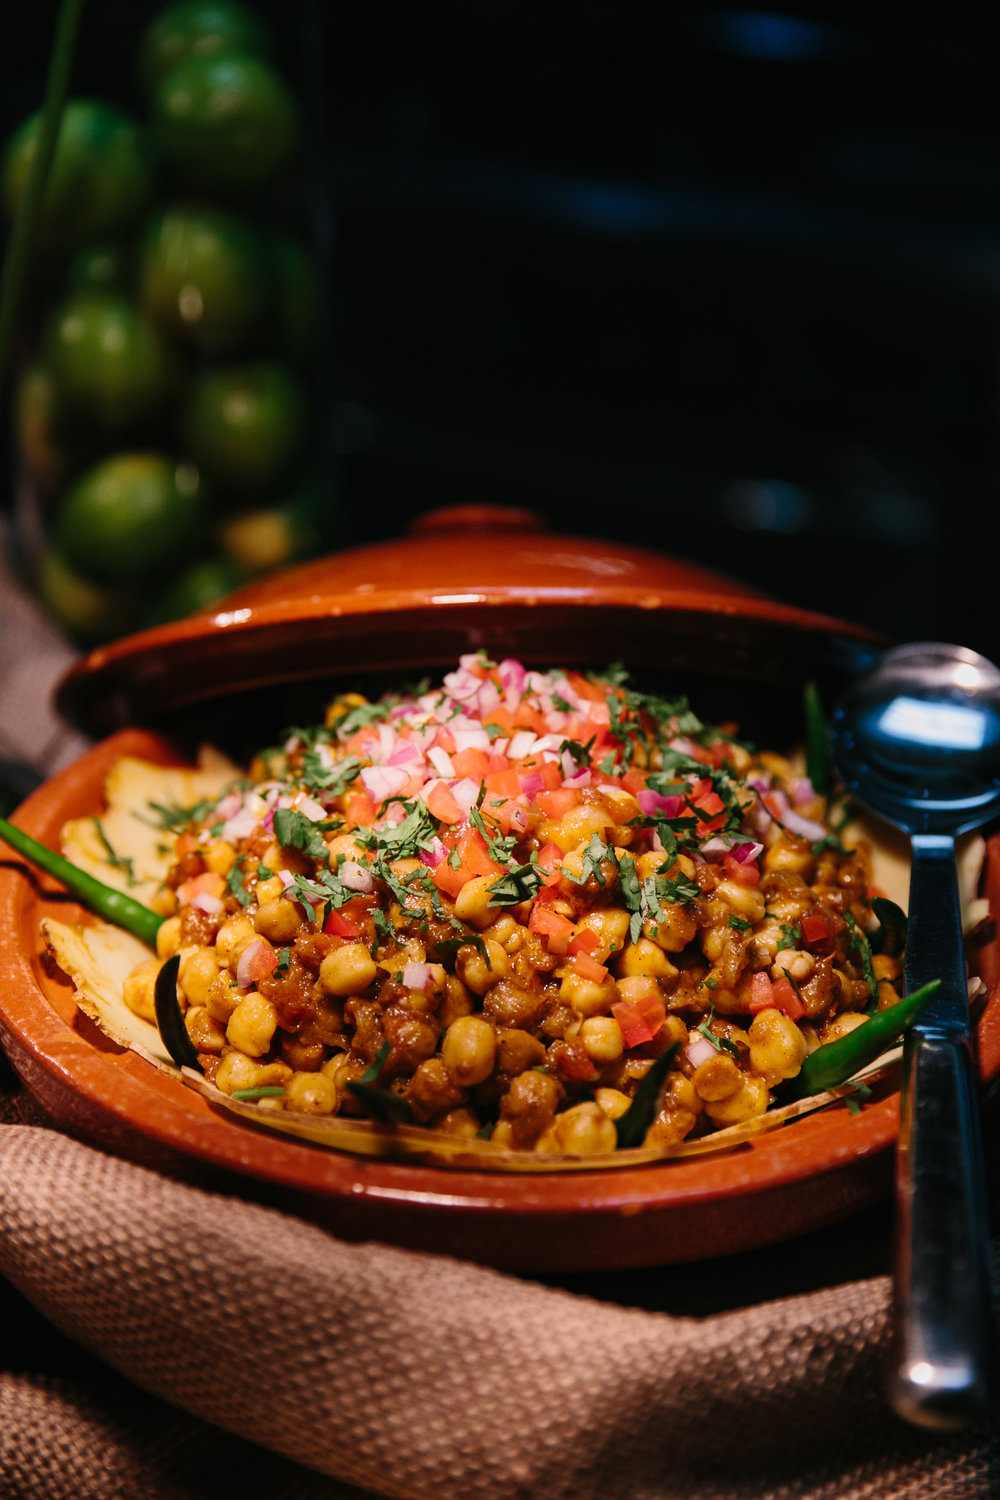 Channa Masala - Chickpeas & Tomatoes with Garlic, Ginger, Onion, Chiles & Traditional Indian Spices like Cumin, Garam Masala, Coriander, and Turmeric.